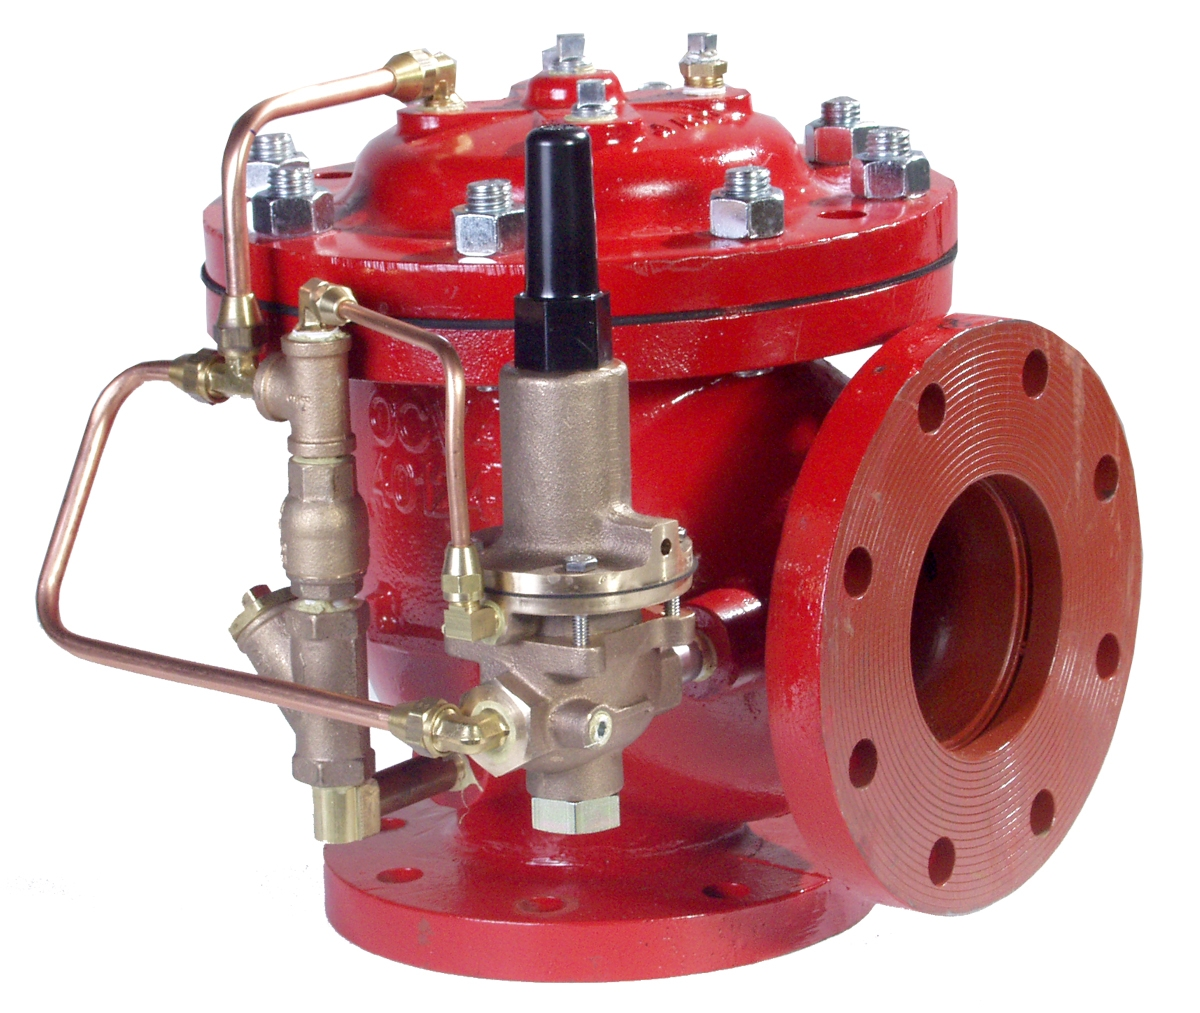 Safety Relief Valve Untuk Instalasi Fire Hydrant further 90 42 Seawater Service Pressure Reducing Valve P 263 additionally Model 108fca Fire Pump Relief Valve additionally 50b 4kg1 Fire Protection Pressure Relief Valve Ul Fm Ulc P 187 additionally Safety Valve Selection. on fire pump relief valve setting